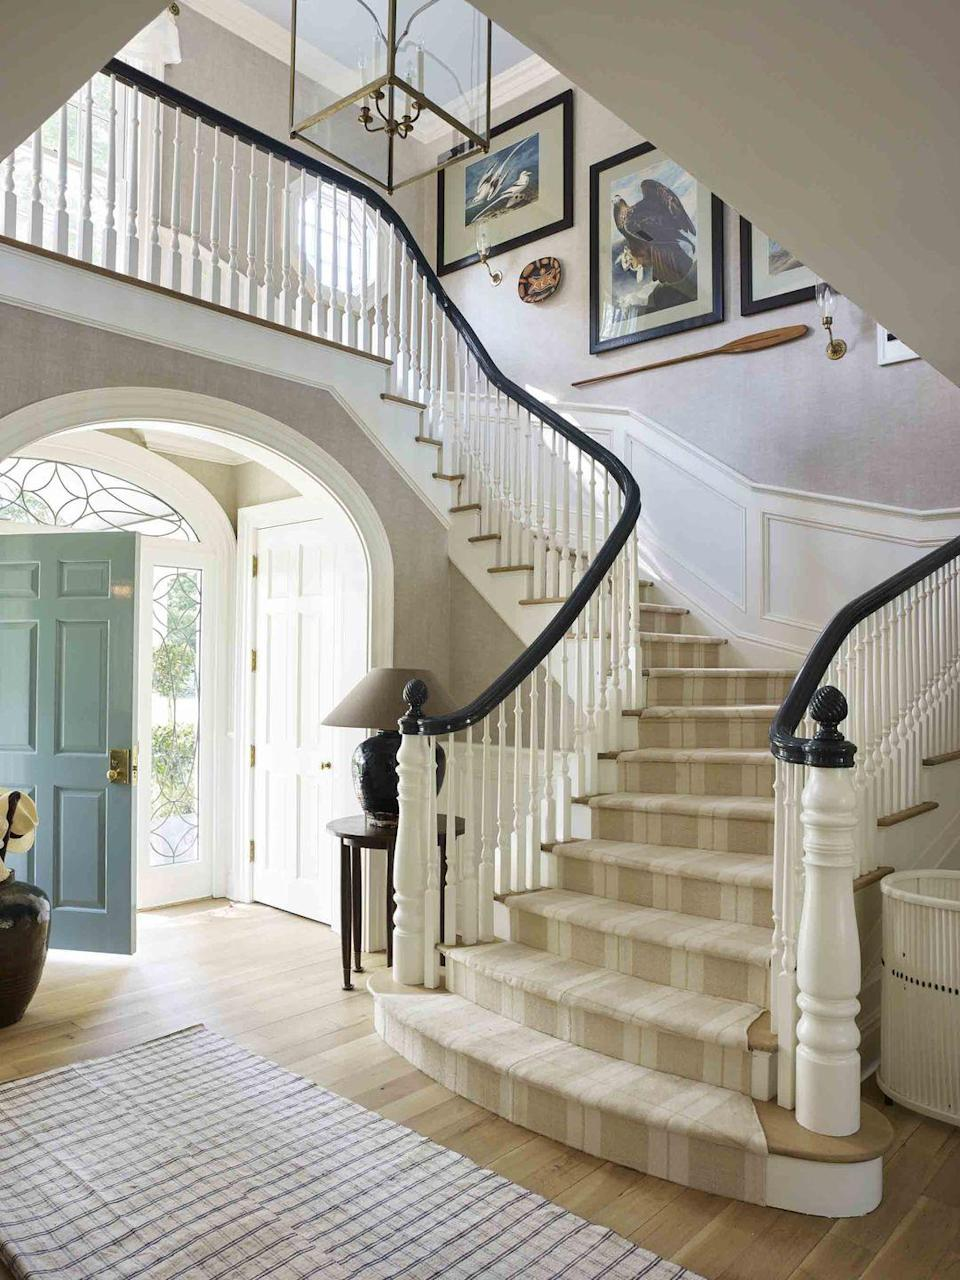 """<p>This serene stairwell offers a grand gesture and warm welcome to any one who steps inside the <a href=""""http://davidnettodesign.com/"""" rel=""""nofollow noopener"""" target=""""_blank"""" data-ylk=""""slk:David Netto"""" class=""""link rapid-noclick-resp"""">David Netto</a>-designed <a href=""""https://www.veranda.com/decorating-ideas/house-tours/a32721440/david-netto-connecticut-house/"""" rel=""""nofollow noopener"""" target=""""_blank"""" data-ylk=""""slk:1930s-style Colonial manse"""" class=""""link rapid-noclick-resp"""">1930s-style Colonial manse</a> in Connecticut. While Pablo Picasso earthenware and Audobon watercolors pepper the entryway, the home is well balanced with Friday night auction finds and trips to local purveyors in the Hudson Valley for a well-traveled yet well-rooted feel. The Wythe Blue-painted door (<a href=""""https://www.benjaminmoore.com/en-us"""" rel=""""nofollow noopener"""" target=""""_blank"""" data-ylk=""""slk:Benjamin Moore"""" class=""""link rapid-noclick-resp"""">Benjamin Moore</a>) and <a href=""""https://www.woodardweave.com/"""" rel=""""nofollow noopener"""" target=""""_blank"""" data-ylk=""""slk:Woodard Weave"""" class=""""link rapid-noclick-resp"""">Woodard Weave</a> carpet are eye-catching pops that still keep the room feeling full of restrained charm. </p>"""